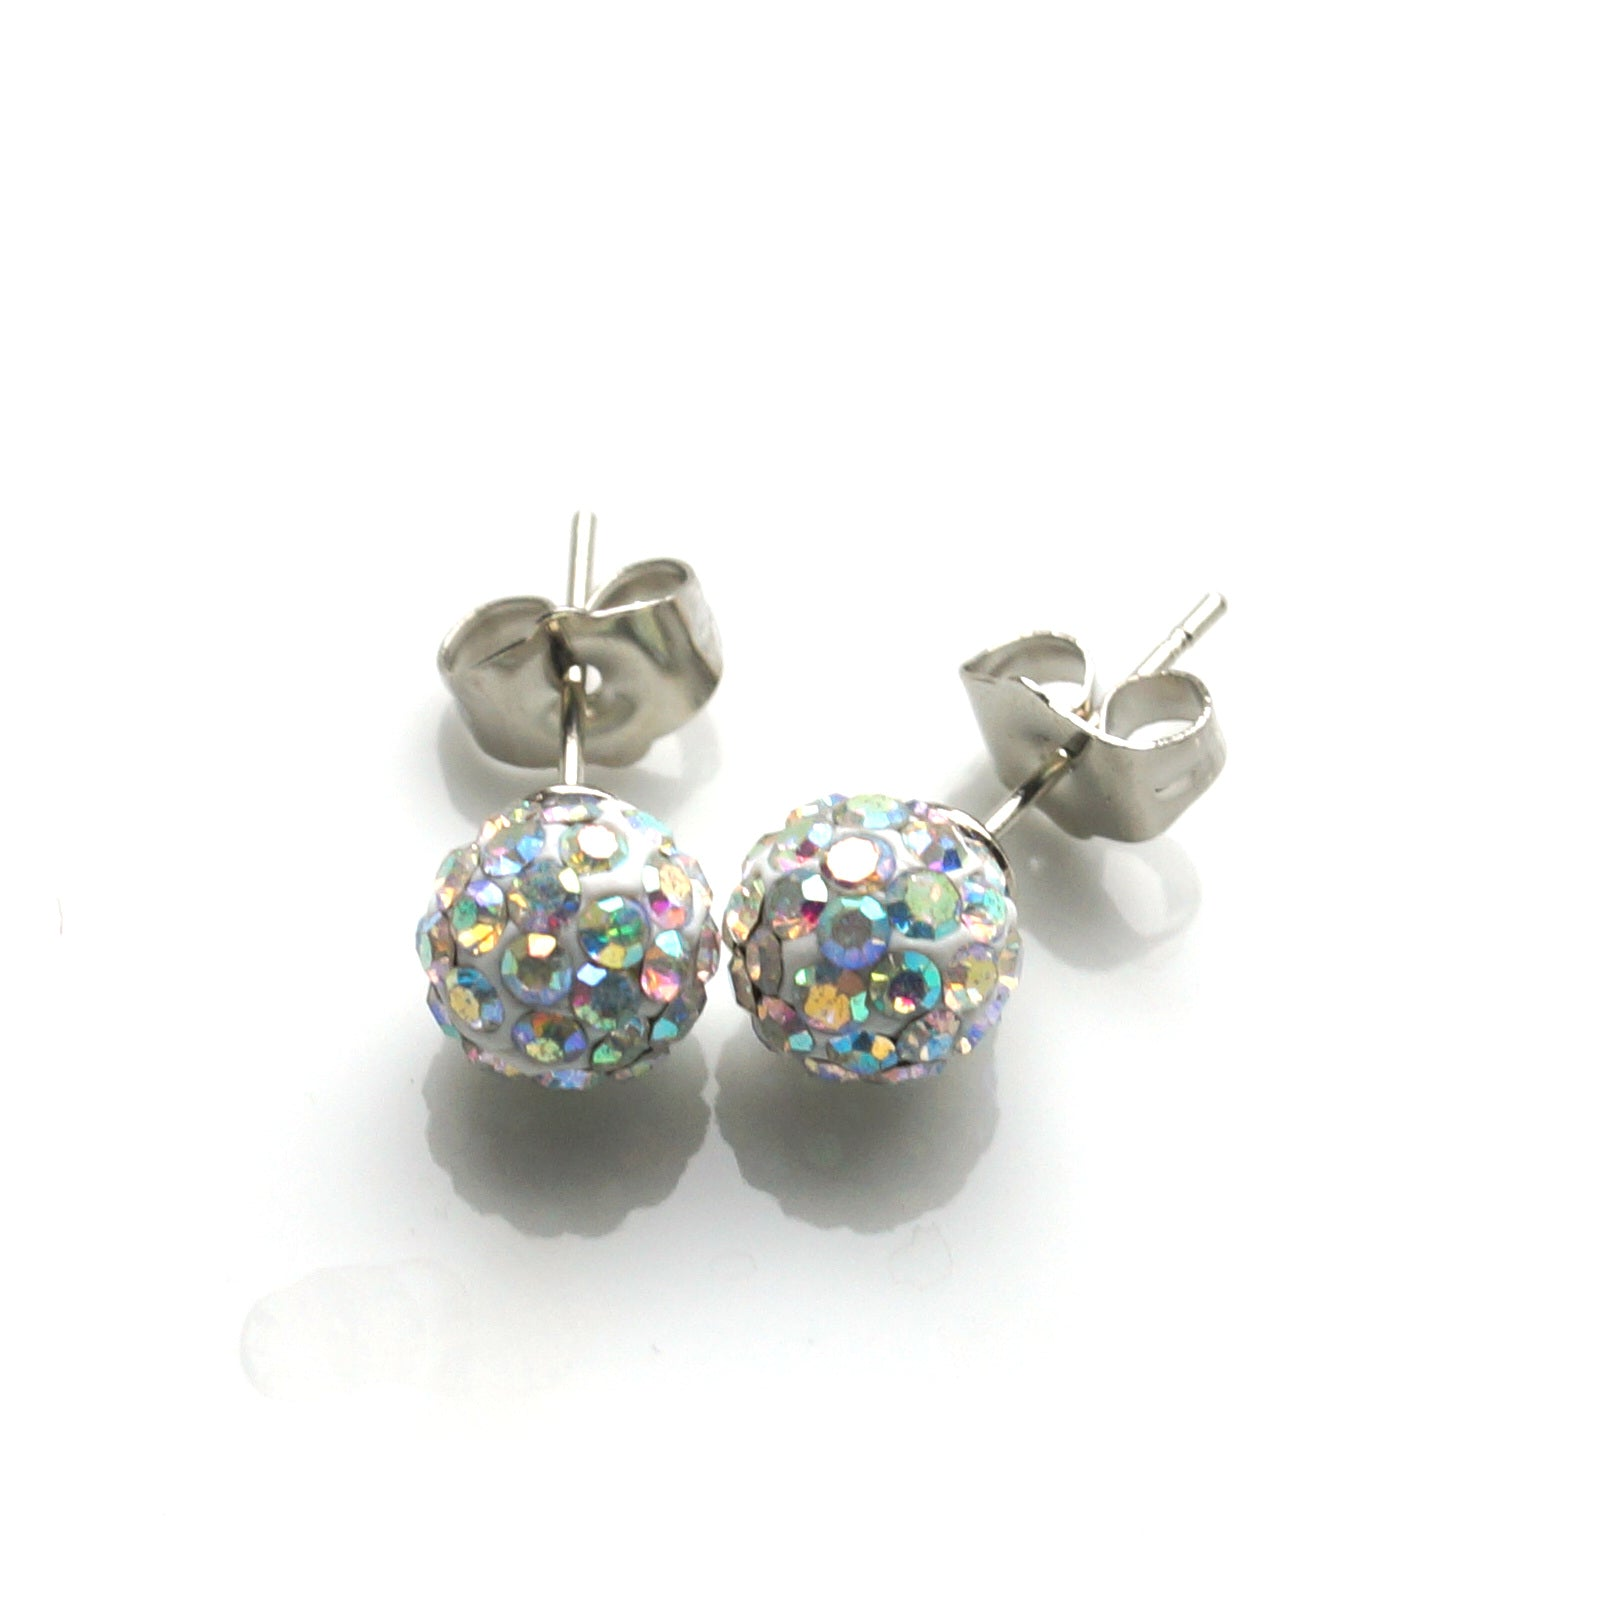 Disco Shimmery Ball Stud Earrings (8mm)